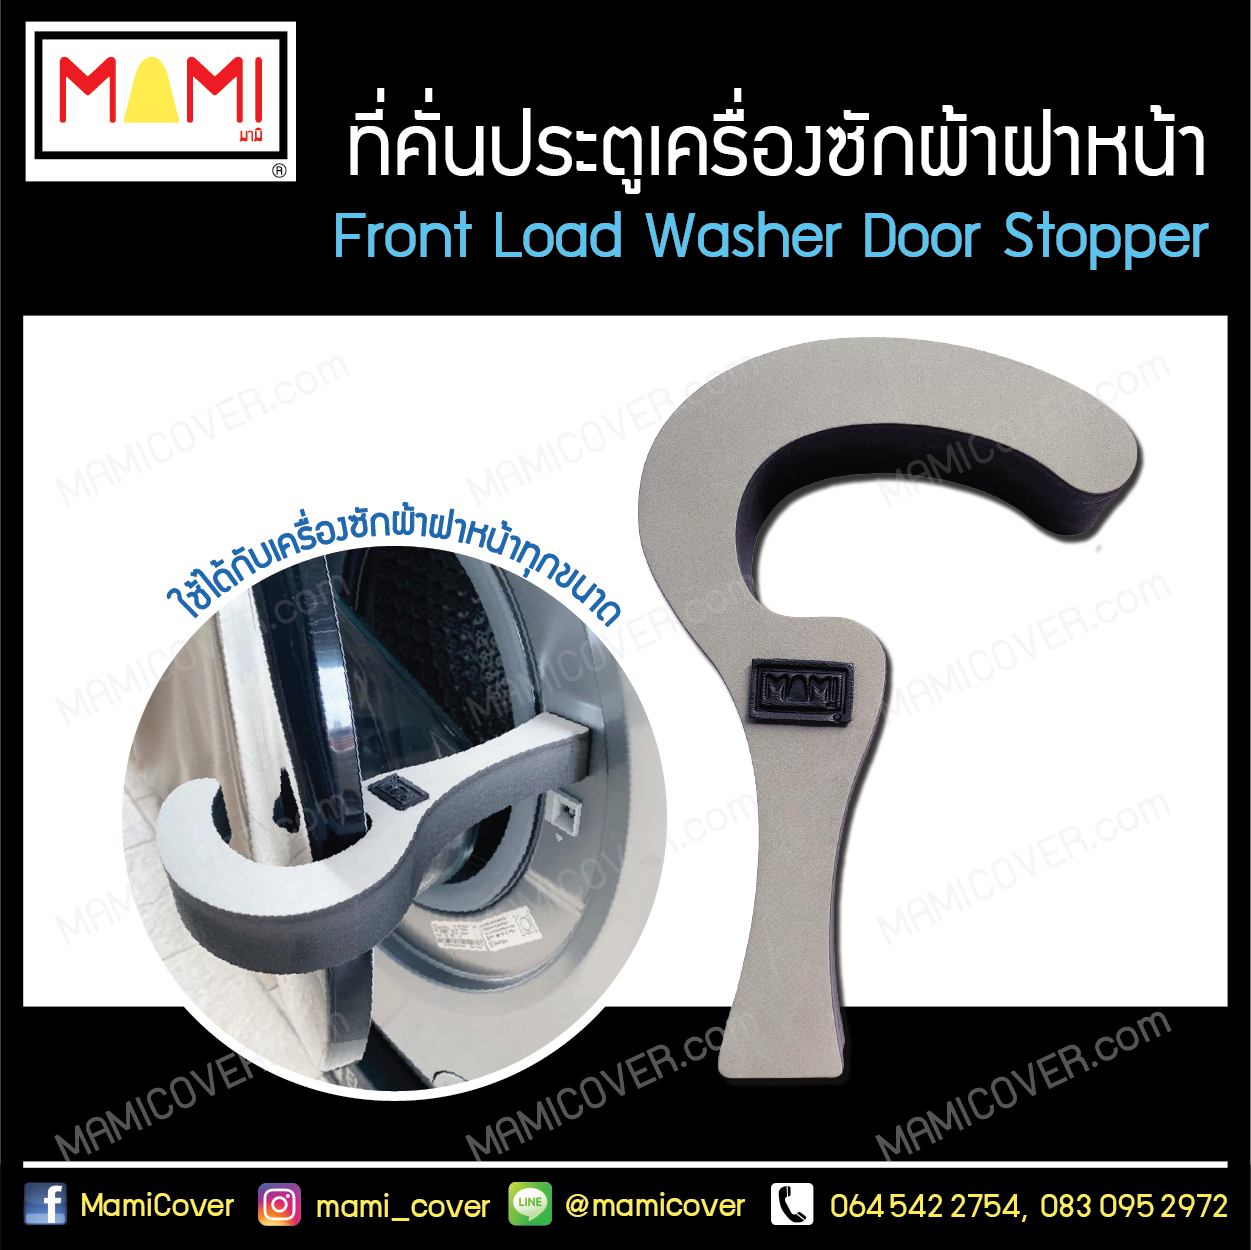 Front Load Washer Door Stopper Category Cover